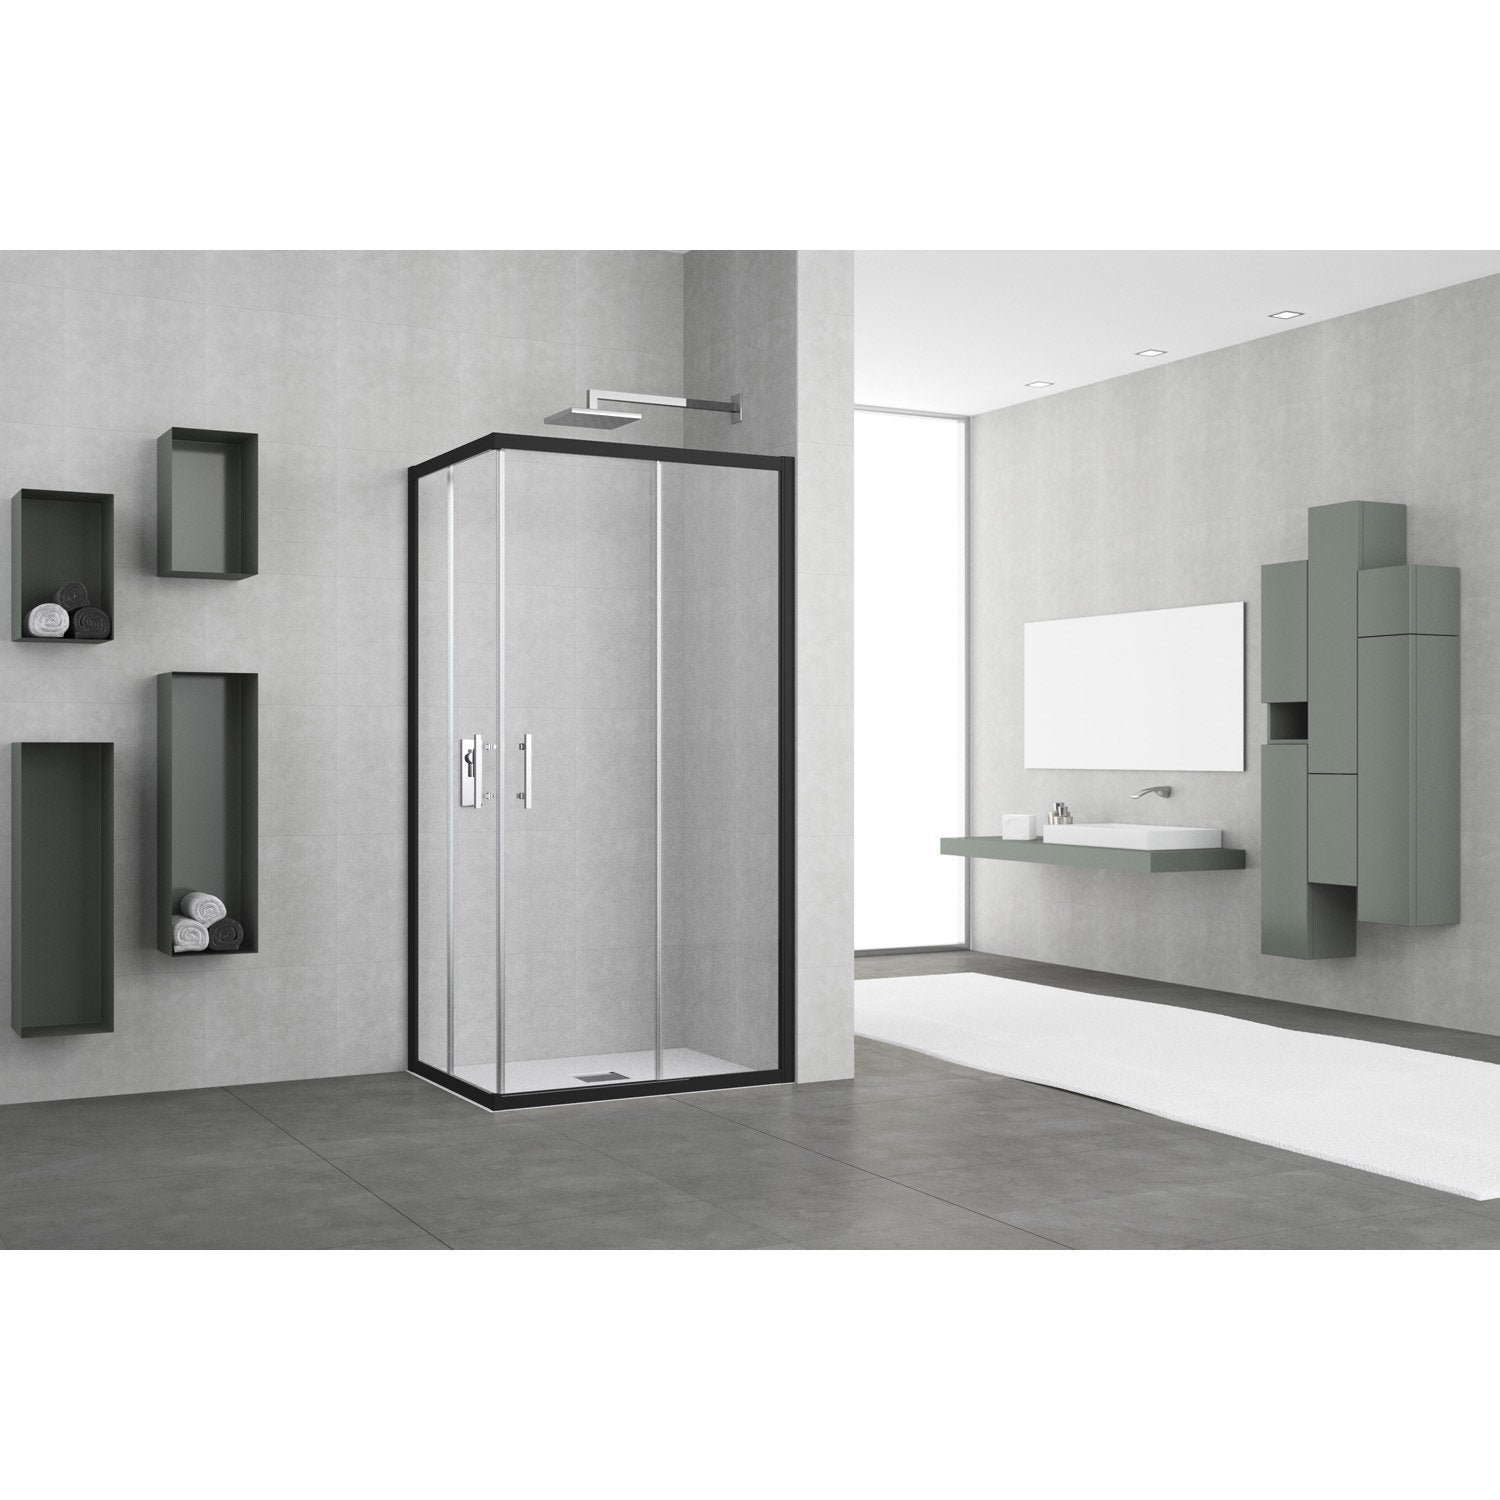 Porte de douche coulissante angle rectangle x - Porte douche 70 cm ...